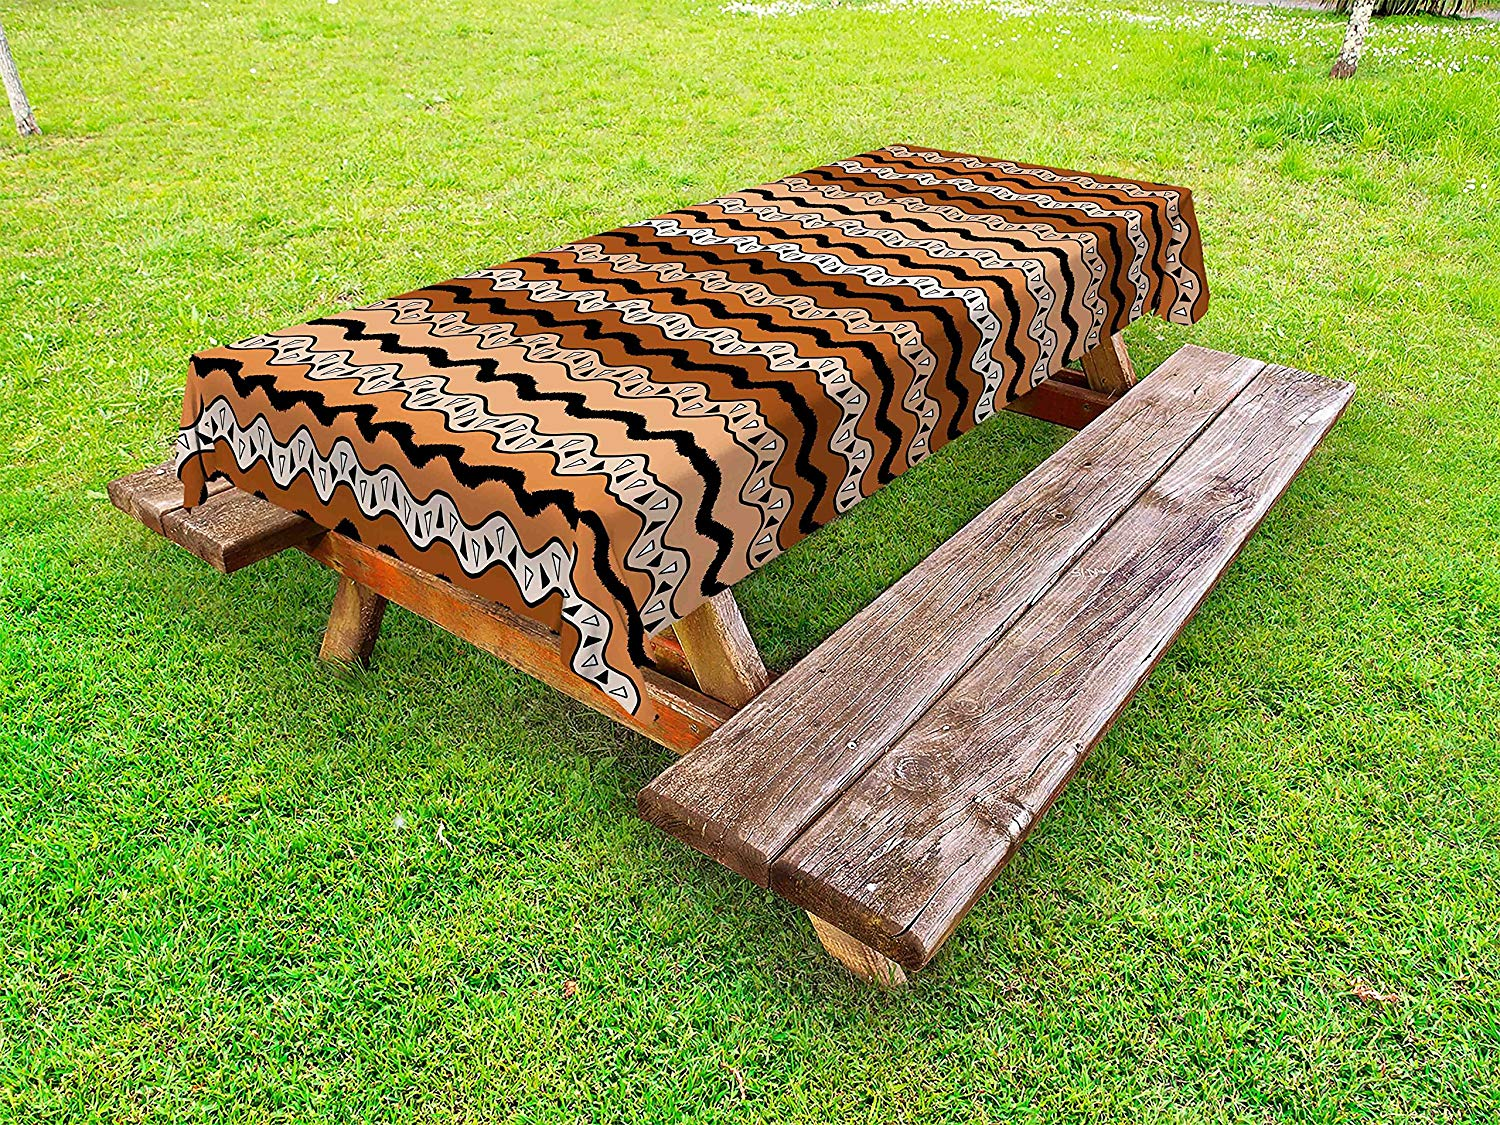 Ambesonne Zambia Outdoor Tablecloth, Tribal Pattern with Wavy Lines Geometric Triangles Kenyan Art Design, Decorative Washable Picnic Table Cloth, 58 X 84 inches, Cinnamon Pale Brown Black